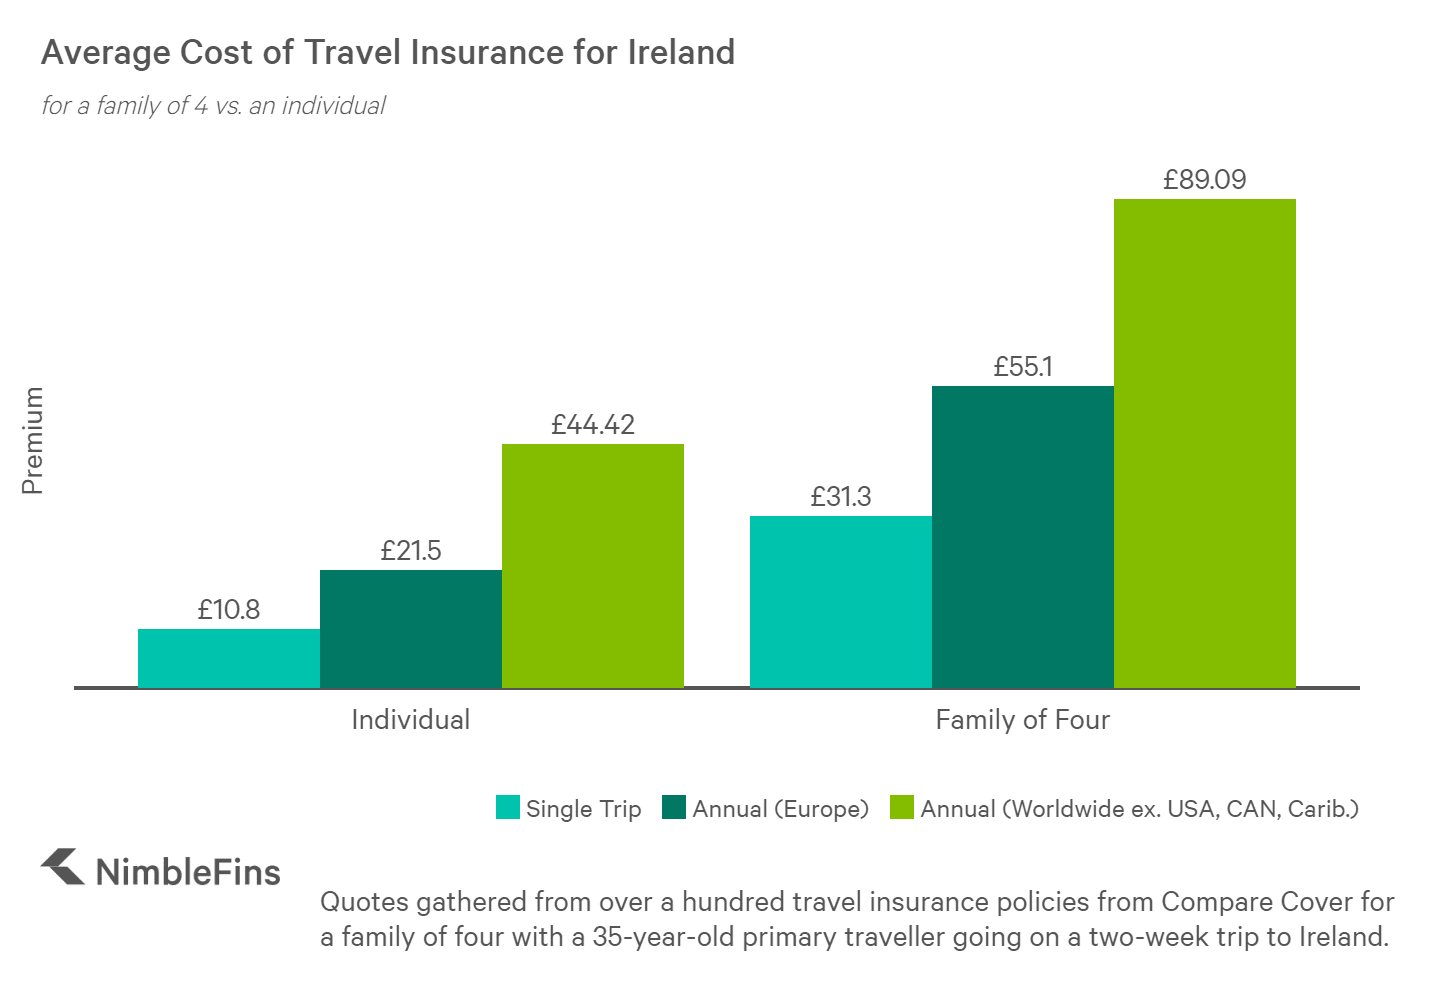 chart showing the average cost of travel insurance to ireland for a family of 4